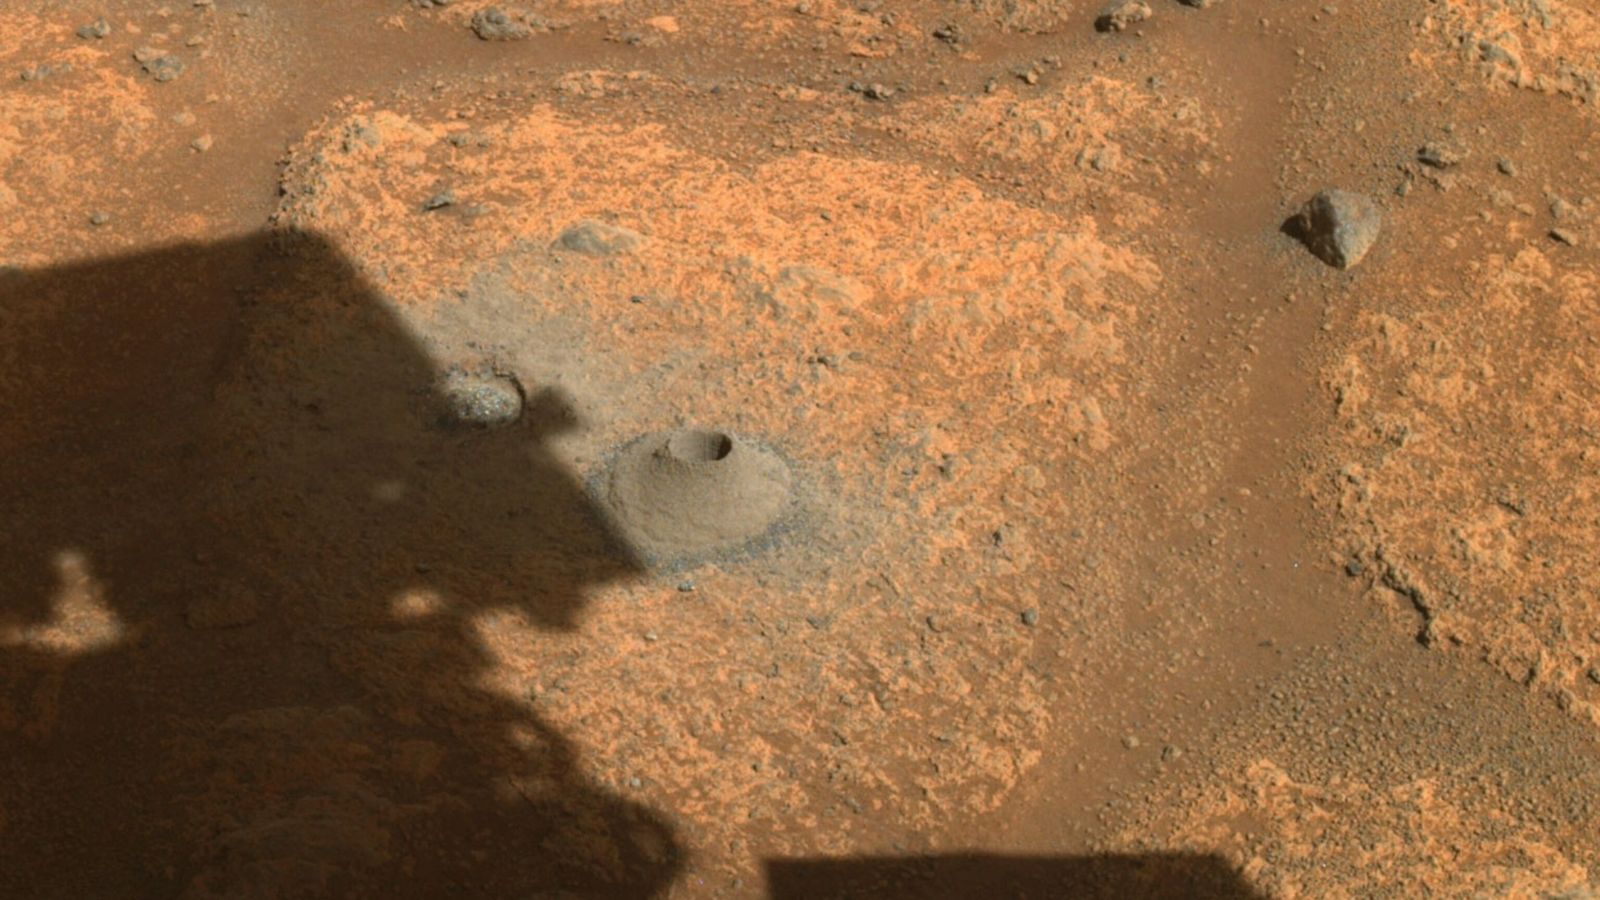 During Perseverance's first sampling attempt, the rover drilled a hole in Mars's surface, shown here, but ...